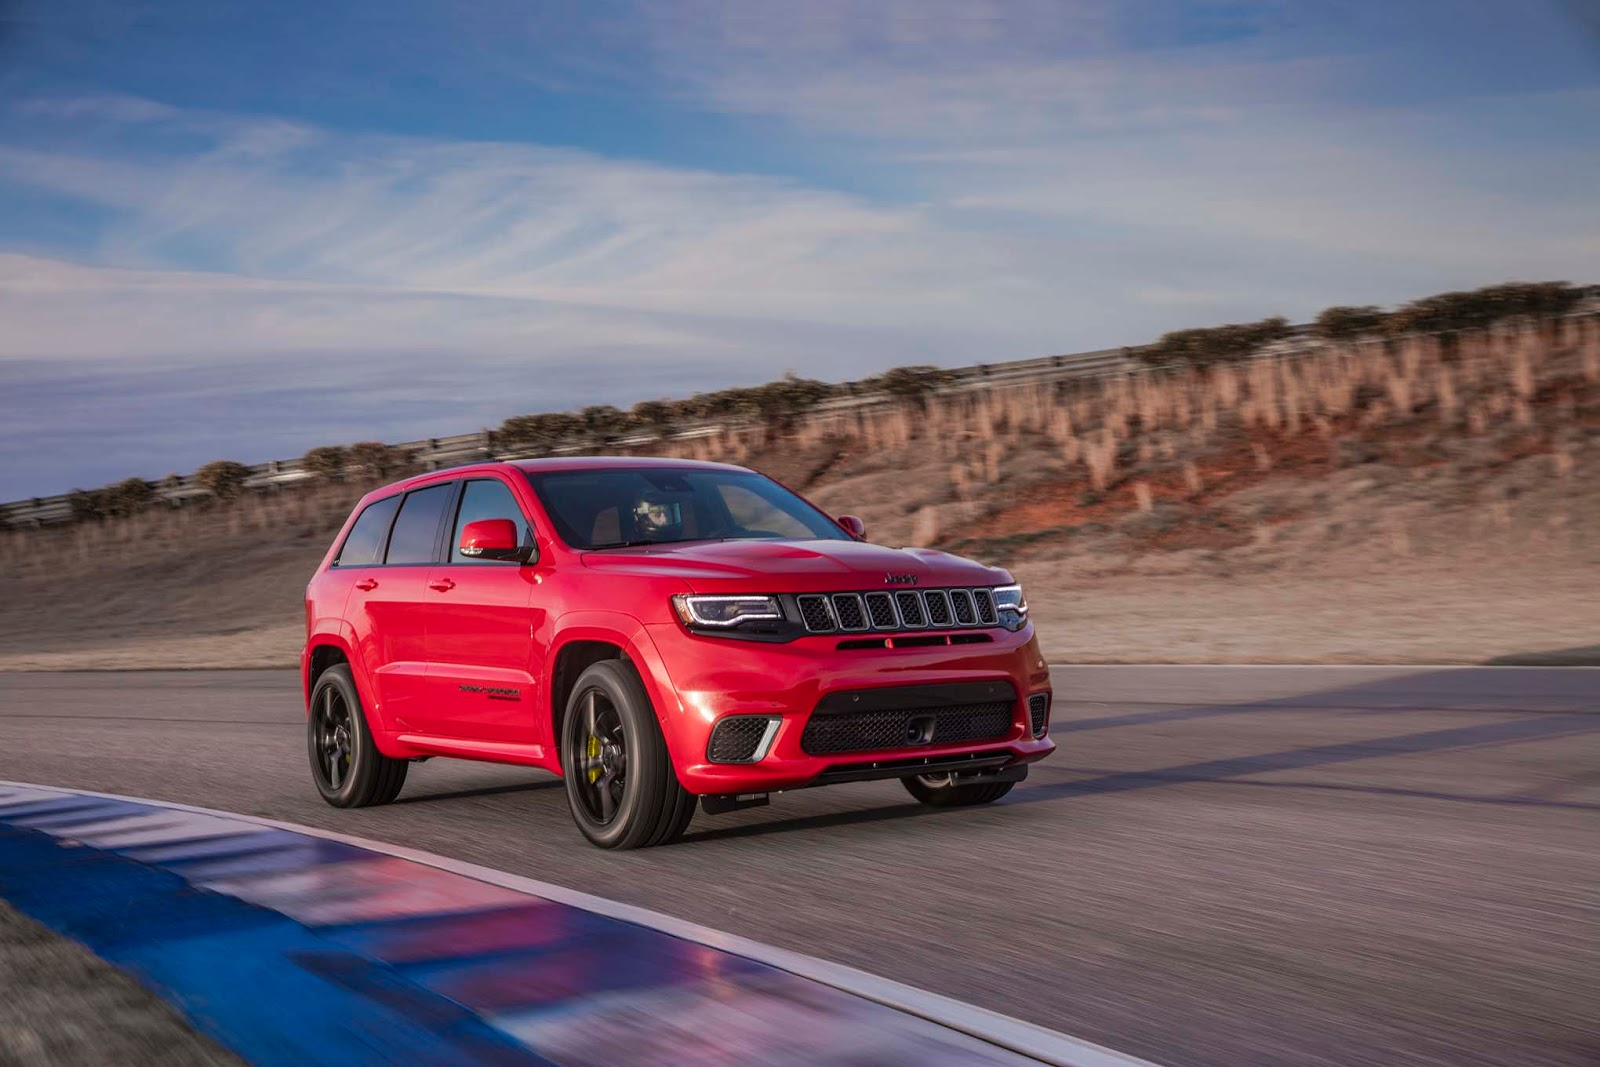 jeep gifts the 2018 grand cherokee trackhawk with 707 hp. Black Bedroom Furniture Sets. Home Design Ideas